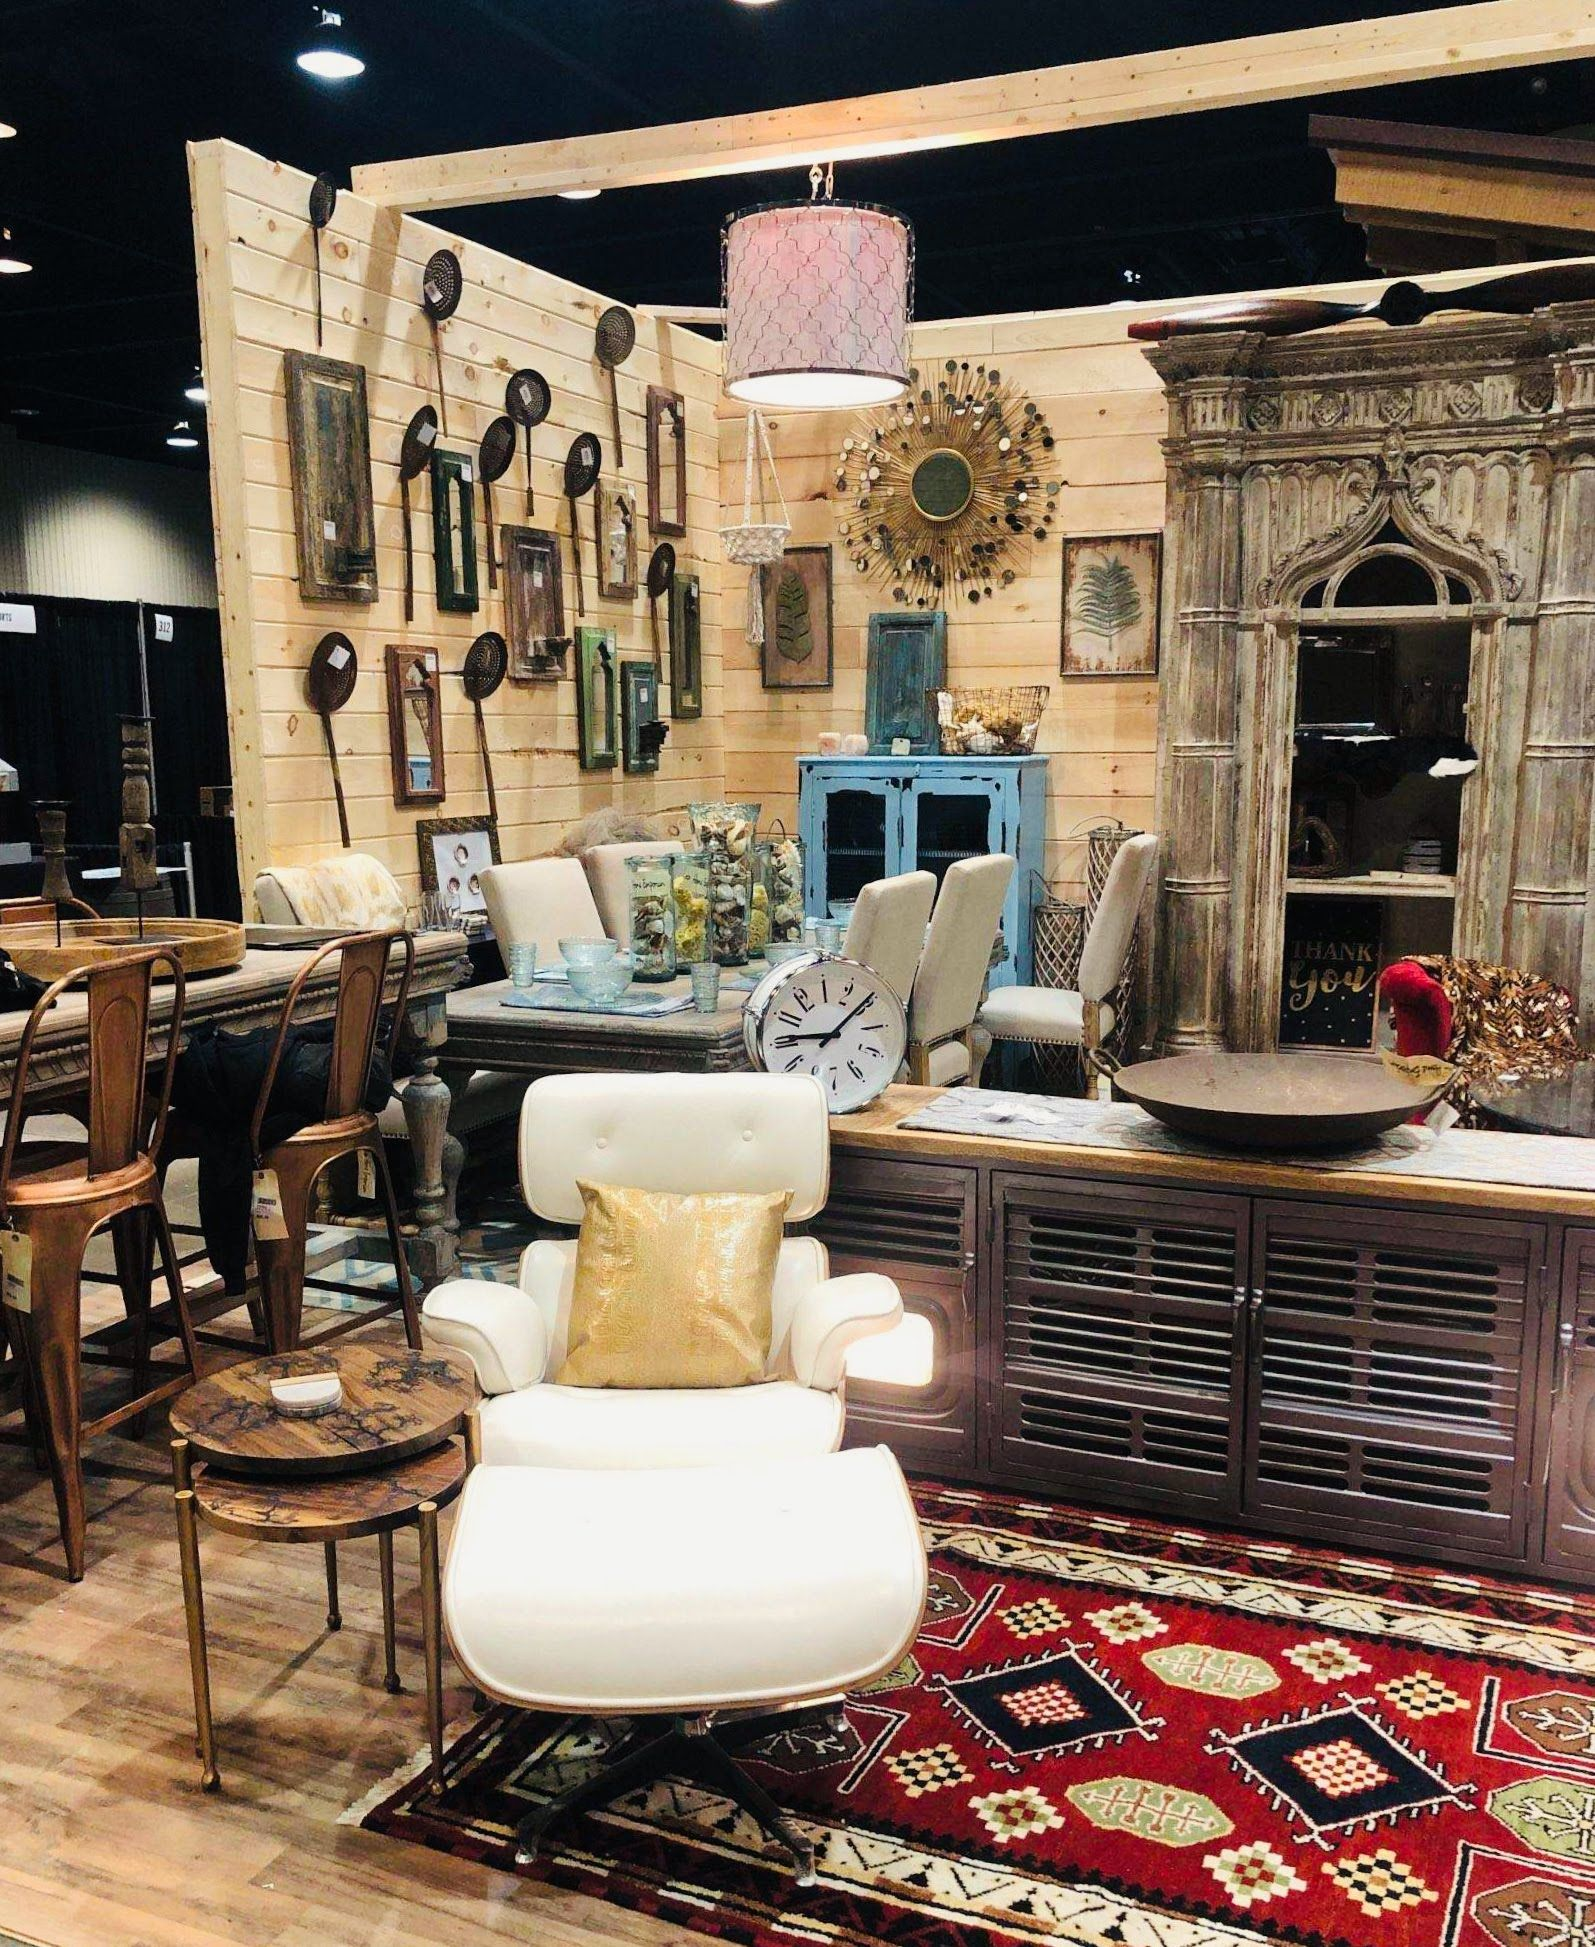 Southeastern Salvage The Bham Home Show Was A Blast We Brought